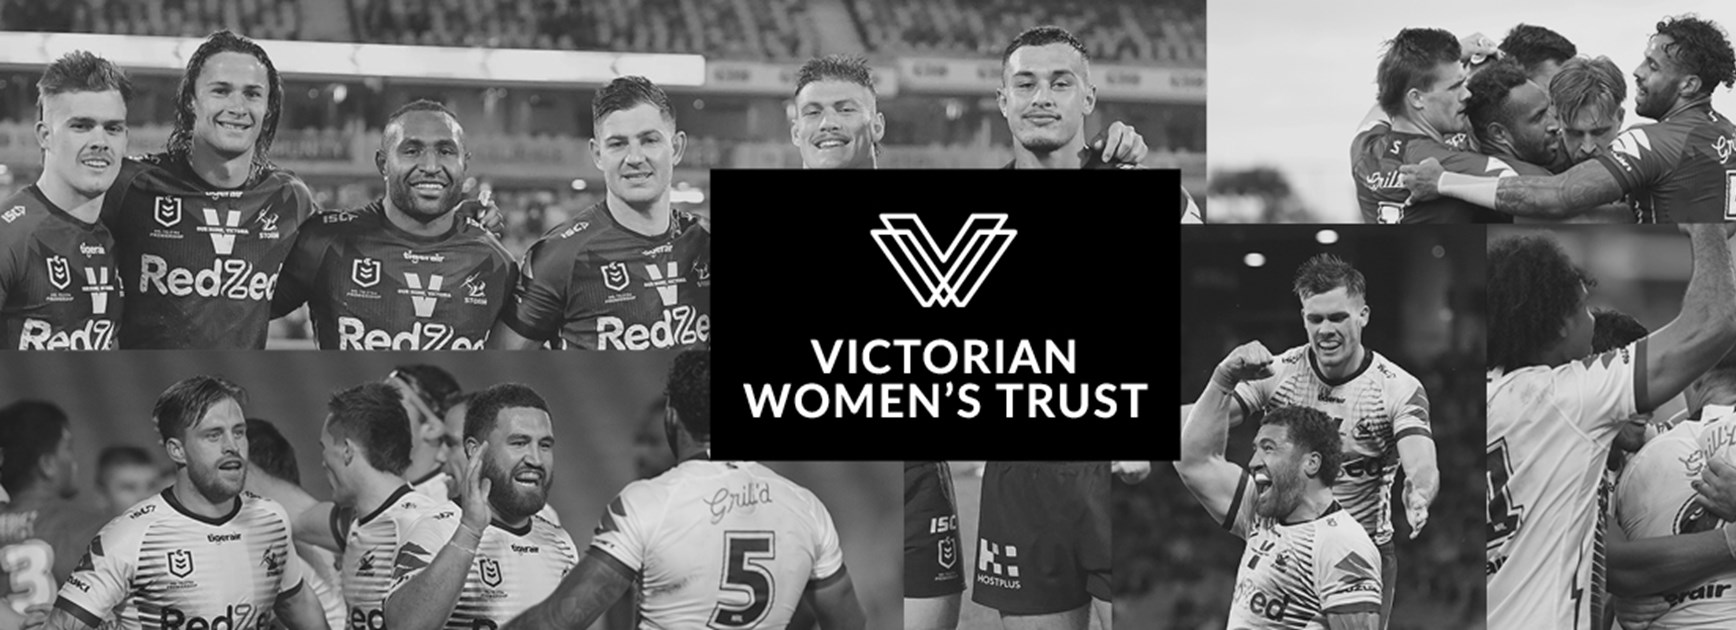 Women in League Round - Storm x Victorian Women's Trust